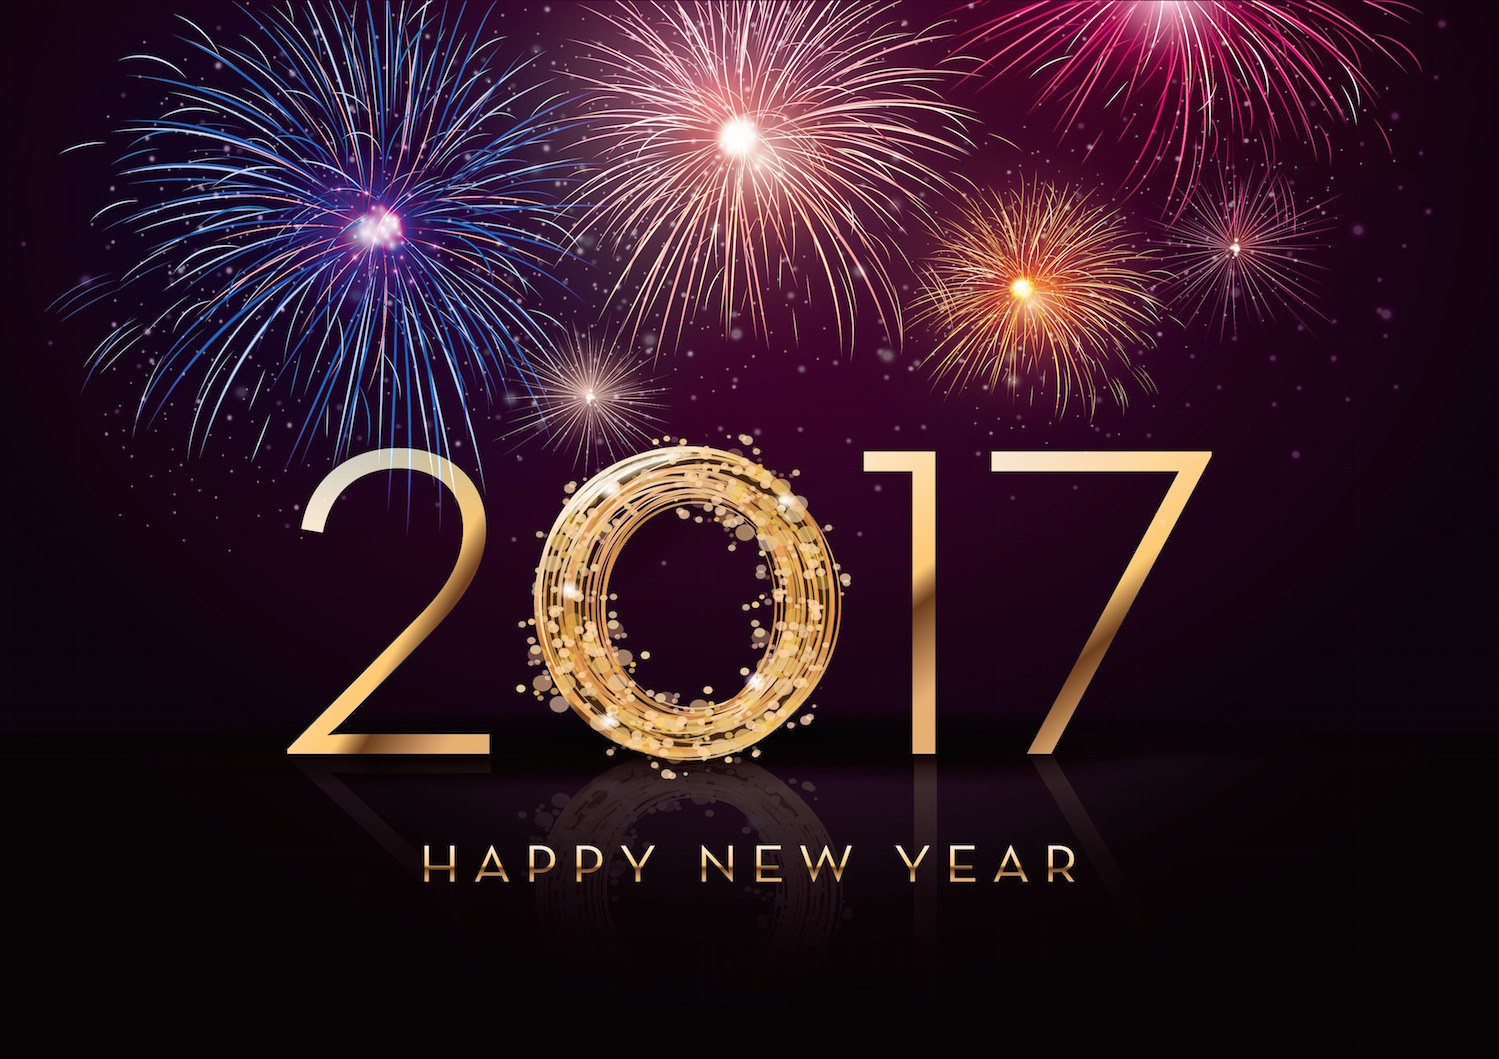 new year eve celebration essay How do you celebrate new year we new year essay and every one try to spend the first day of new year with smile and joy and in new year eve.